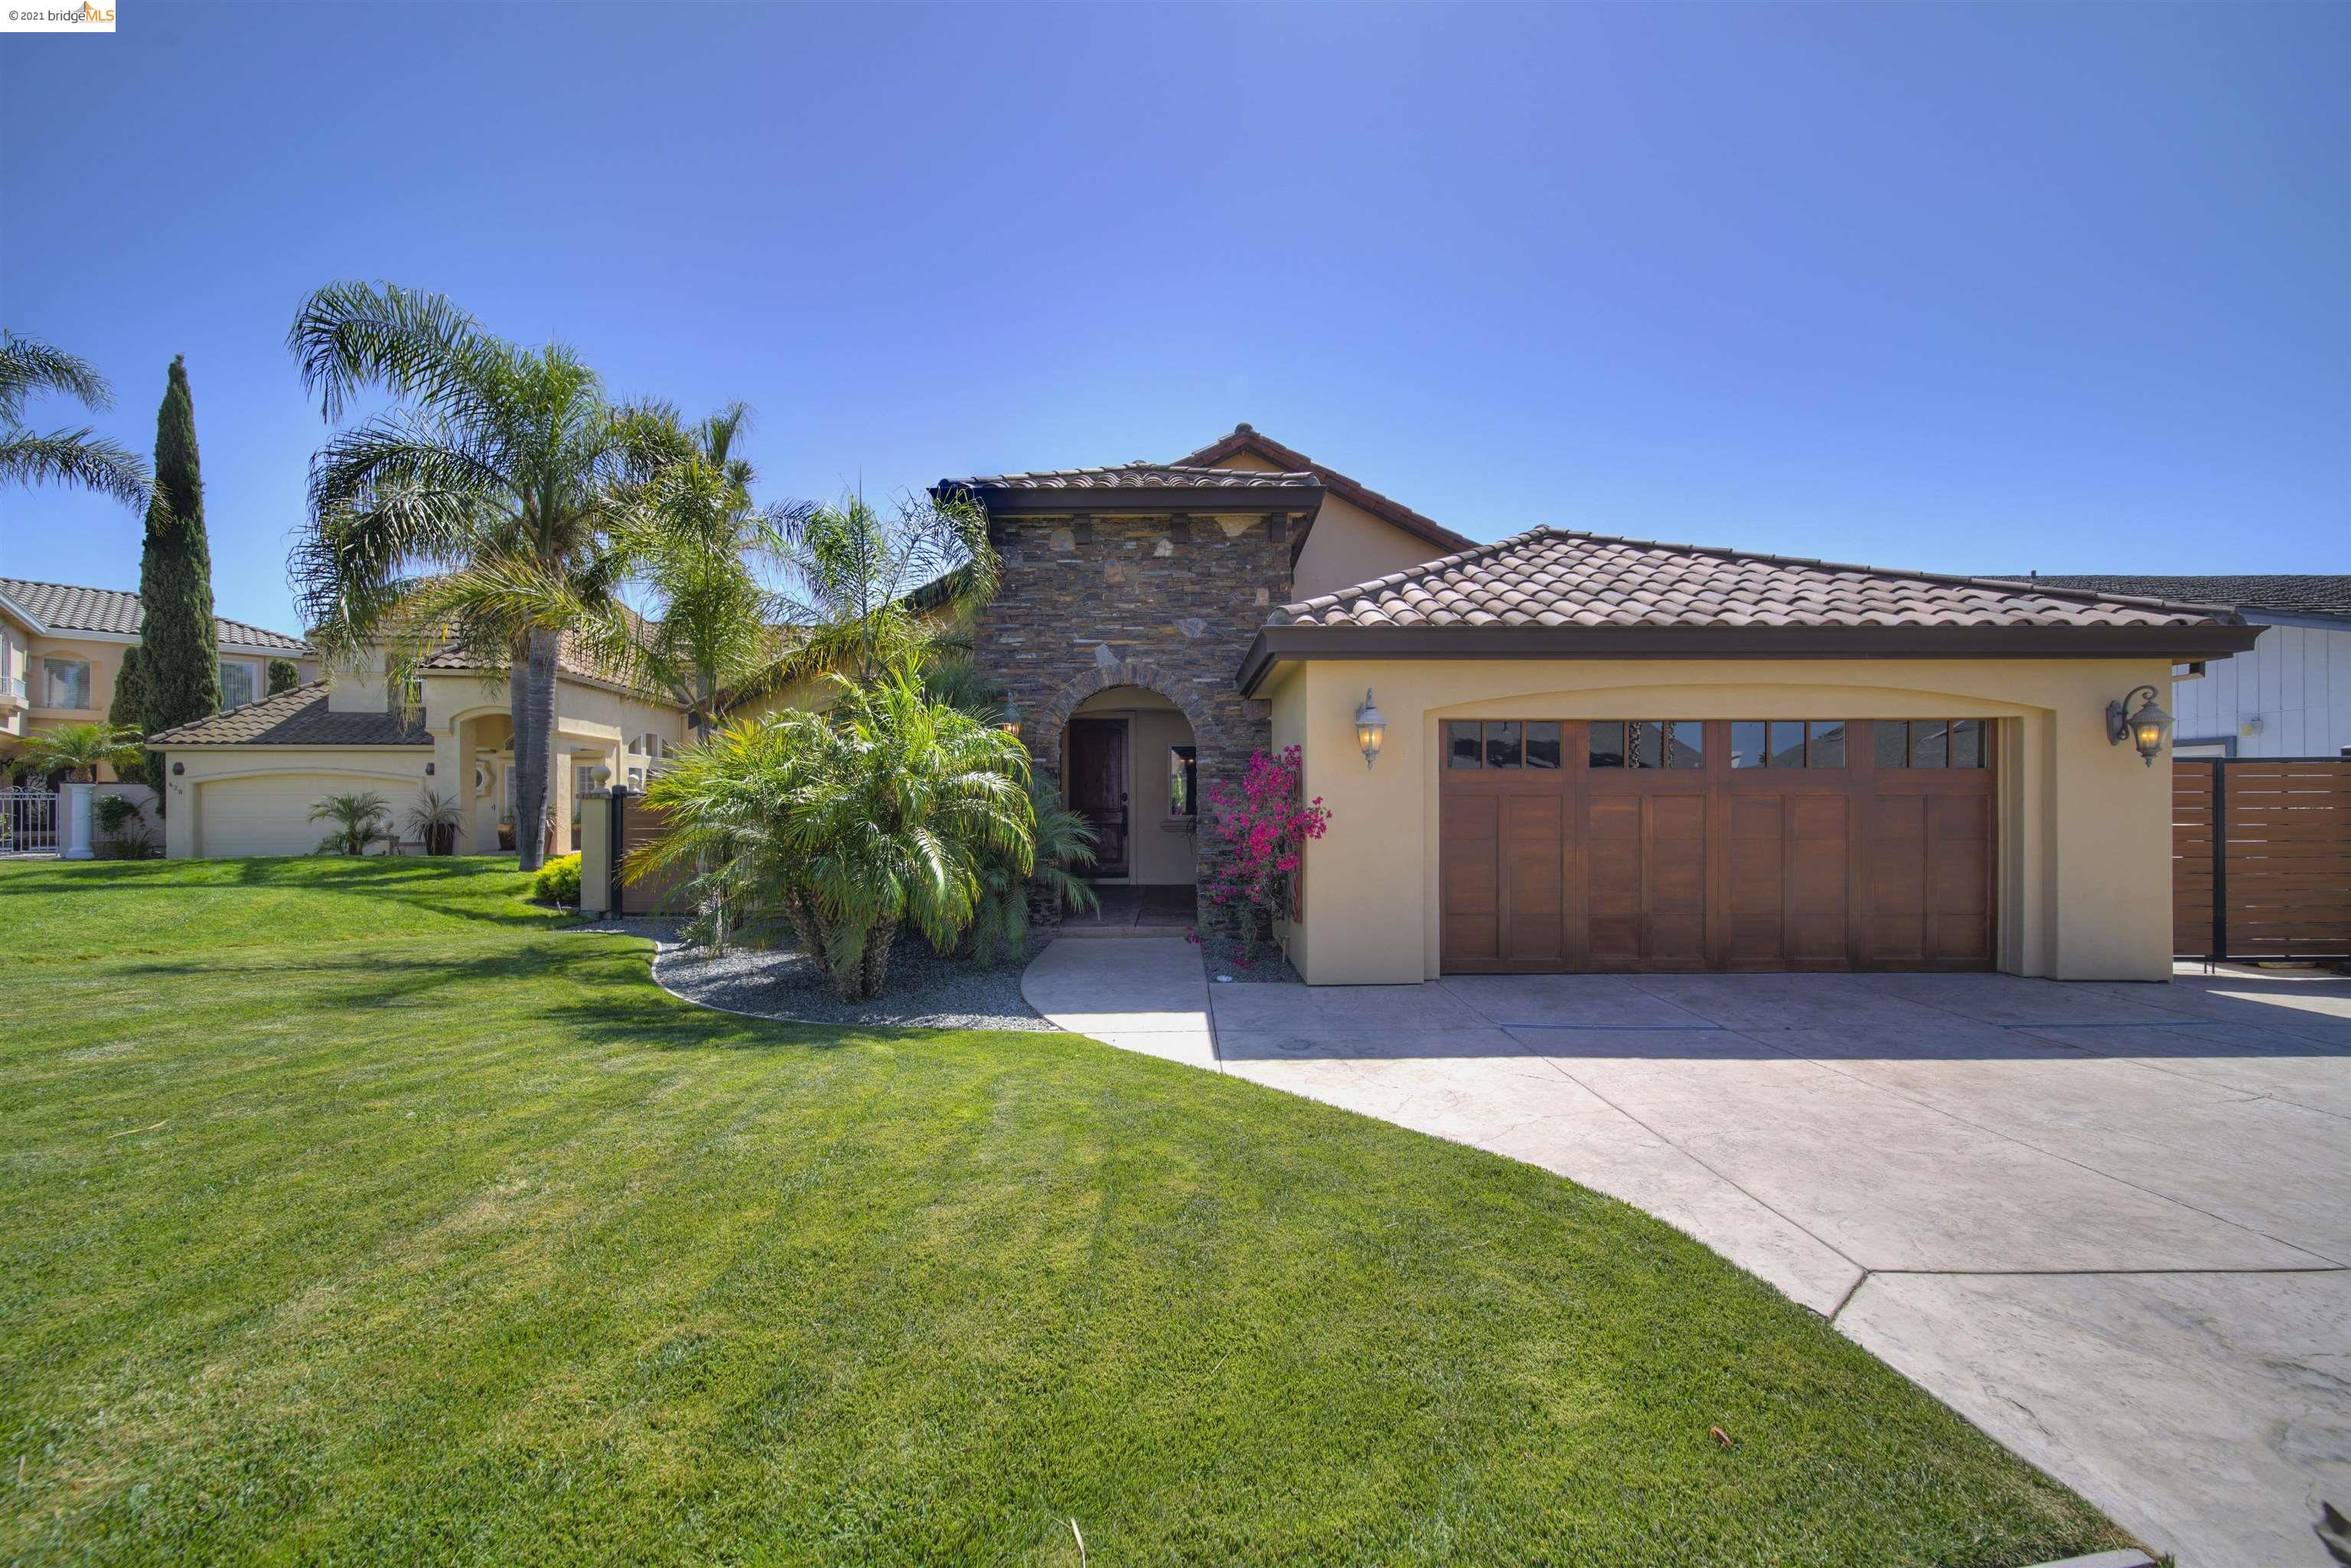 630 Beaver Ct, DISCOVERY BAY, CA 94505